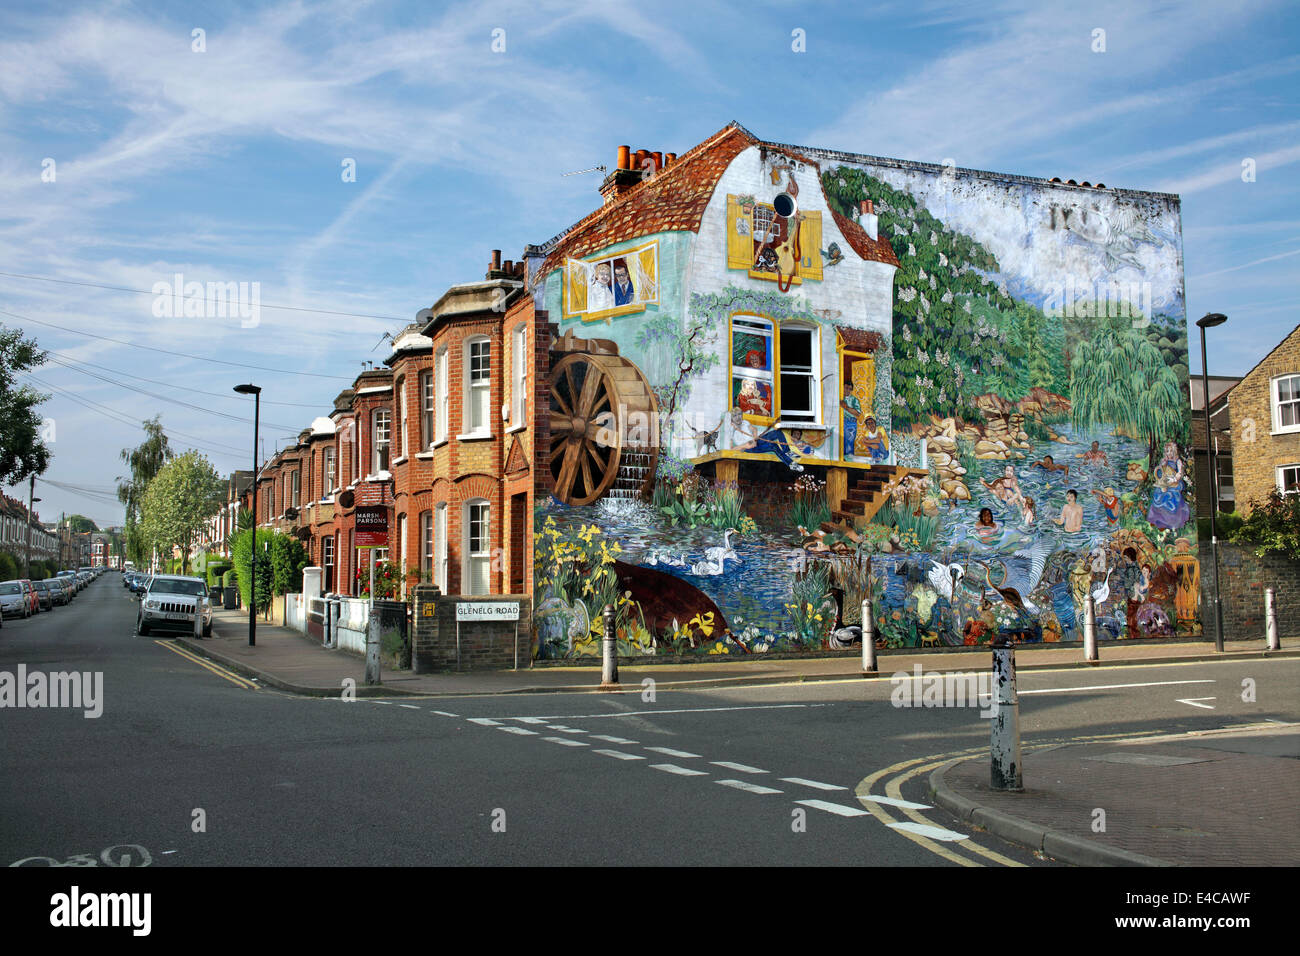 Early morning summer sun lights up the Big Splash mural on the end wall of a terraced house, Brixton, London. Stock Photo